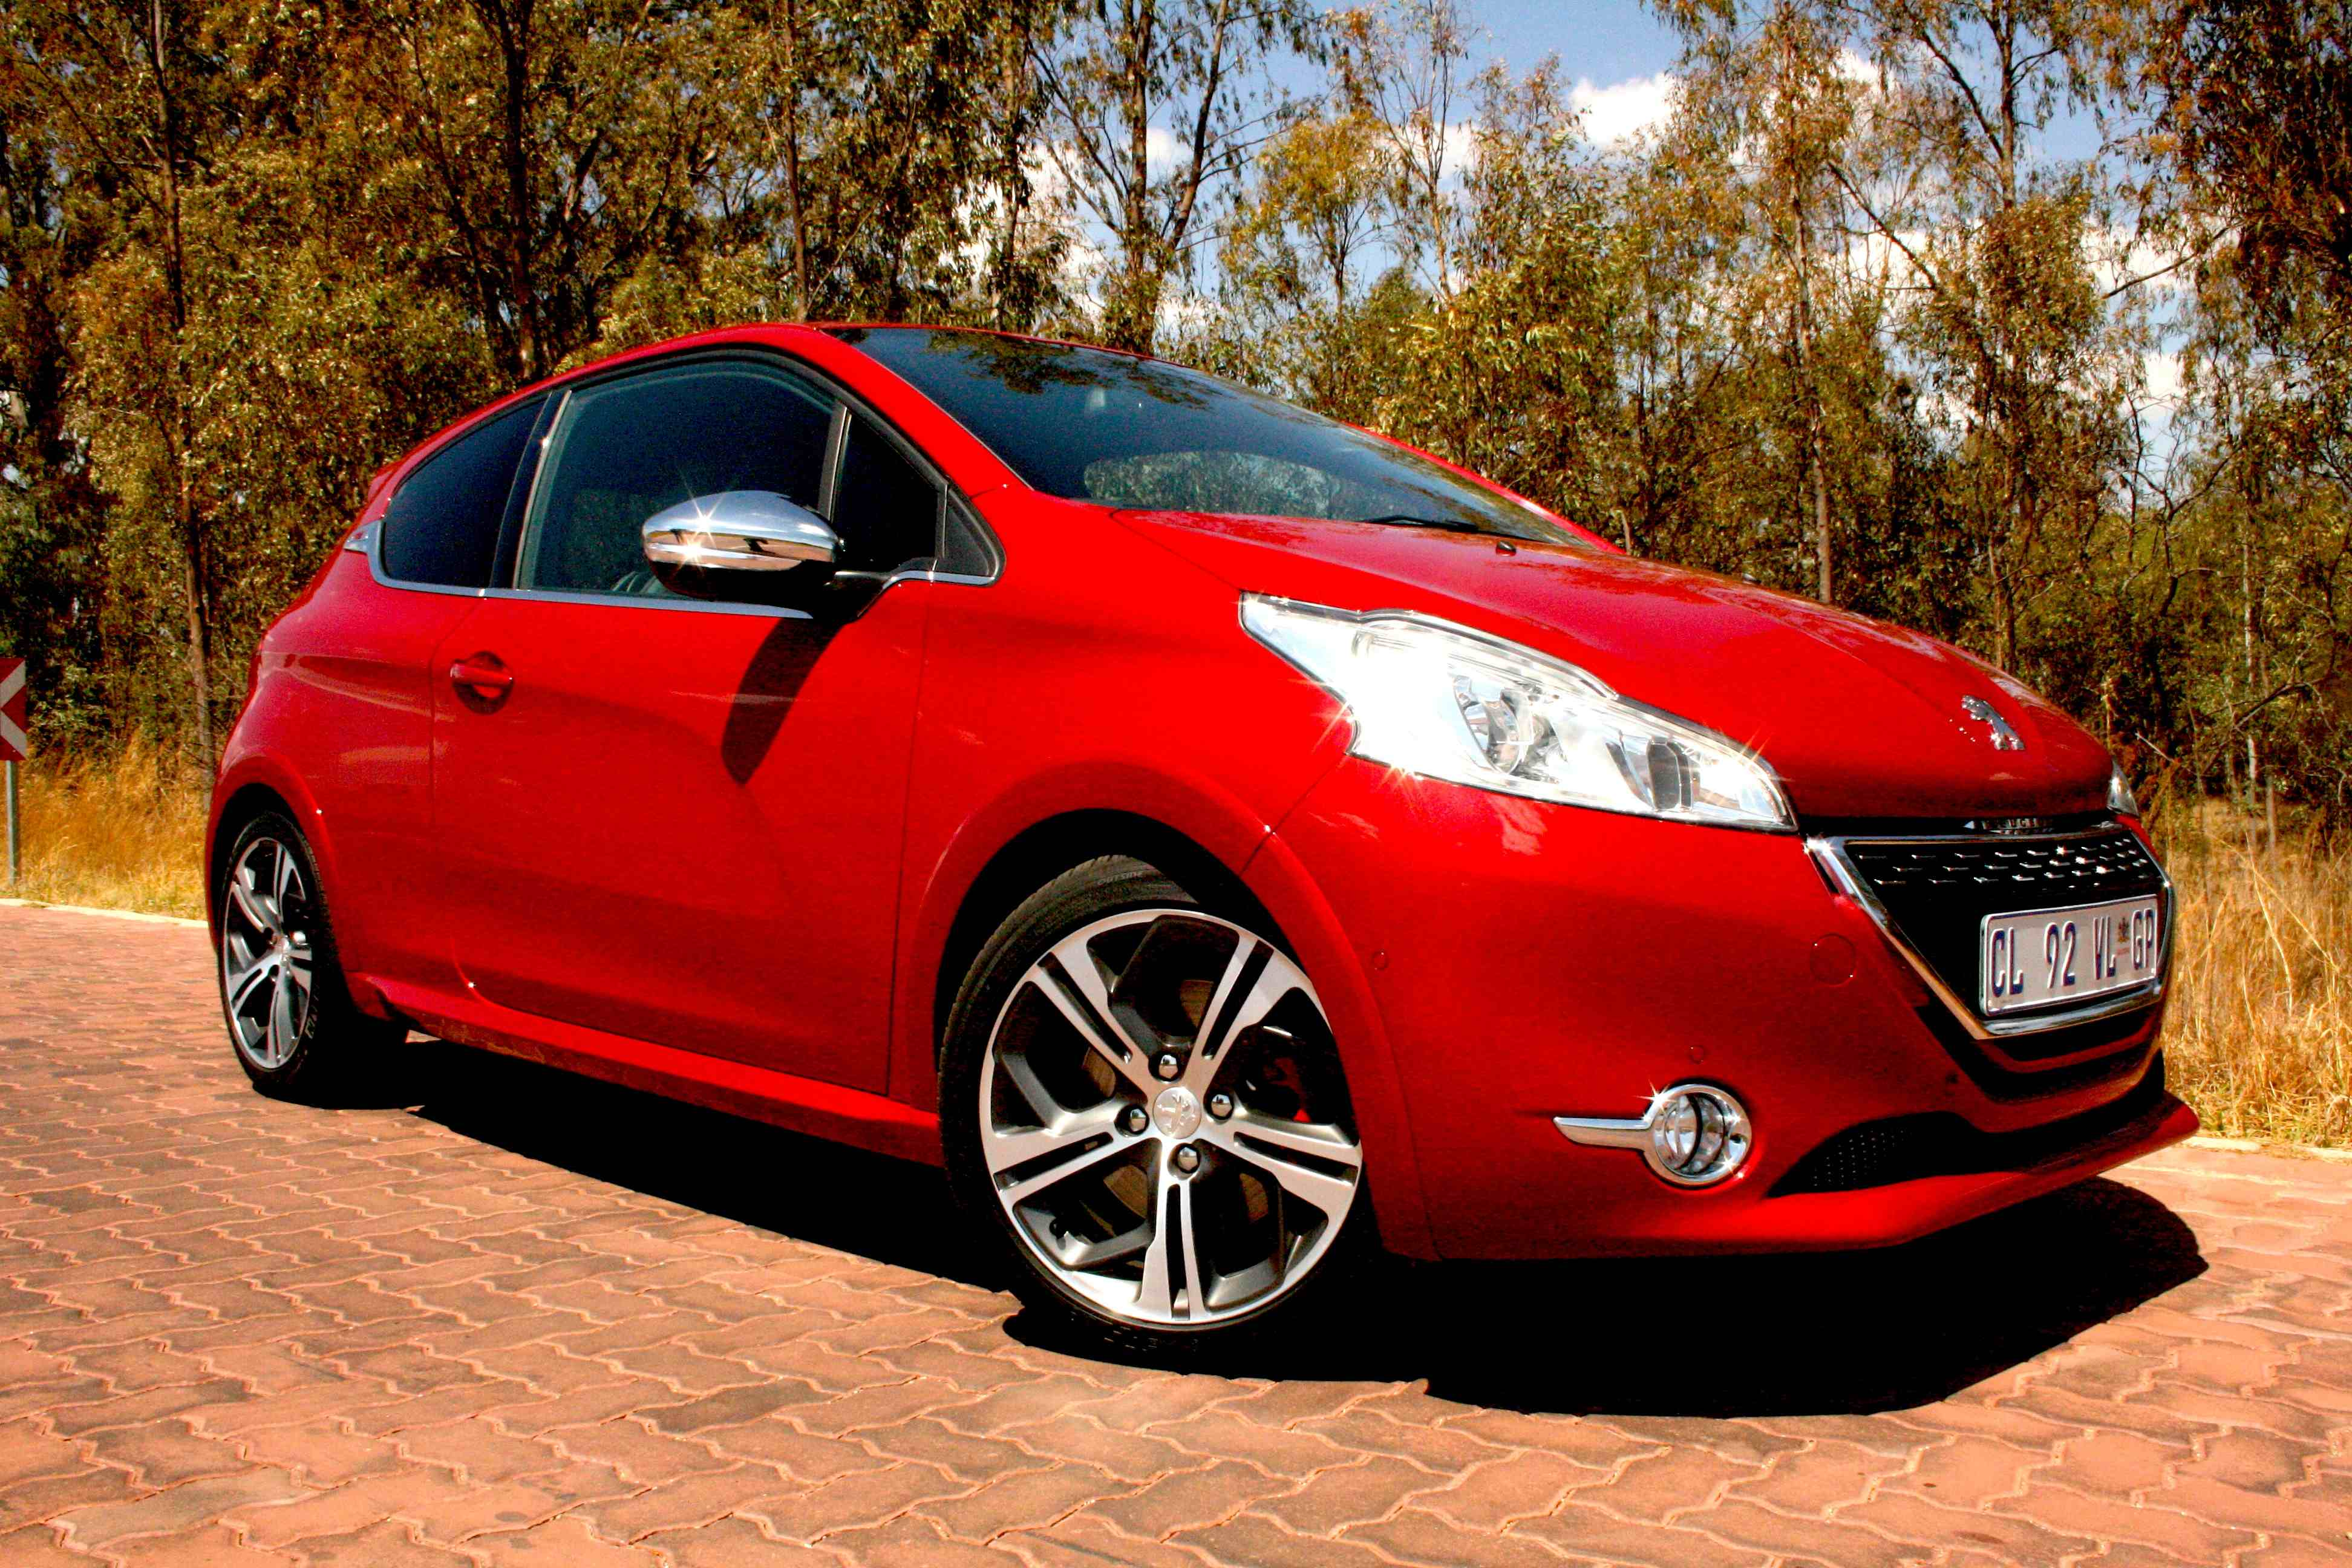 Peugeot 208 GTi (2013): New Car Review – Surf4cars